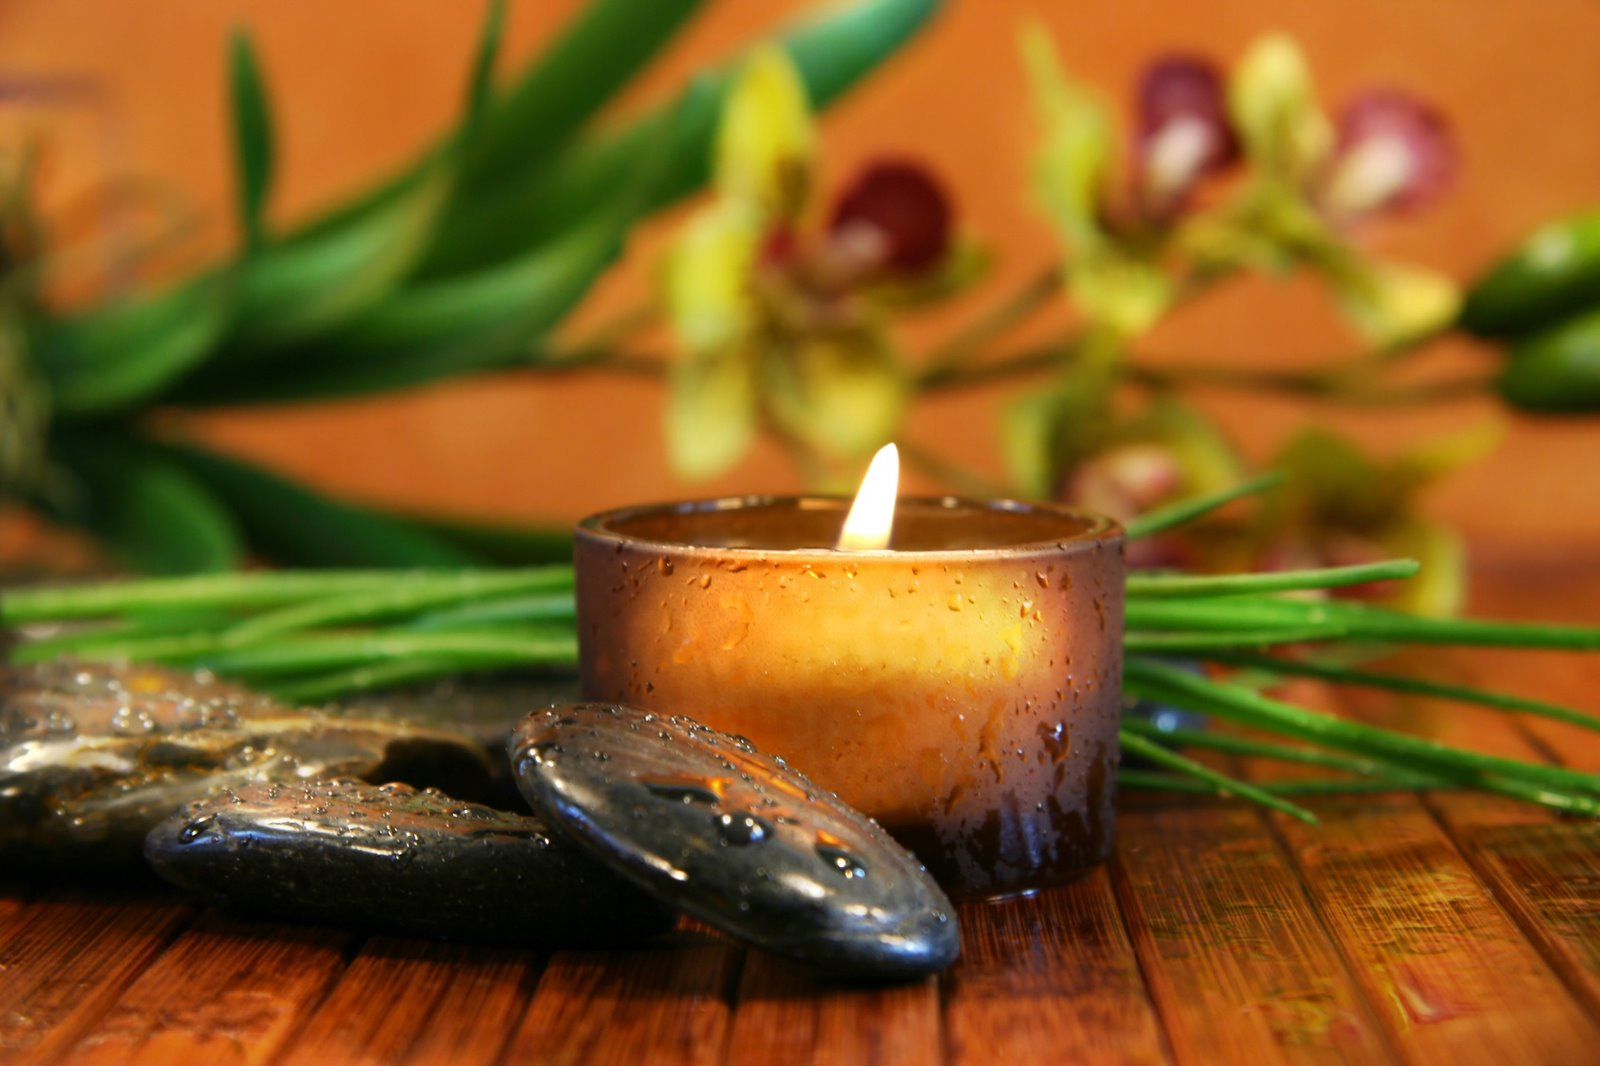 http://piccolospa.webs.com/Relax%20candles.jpg